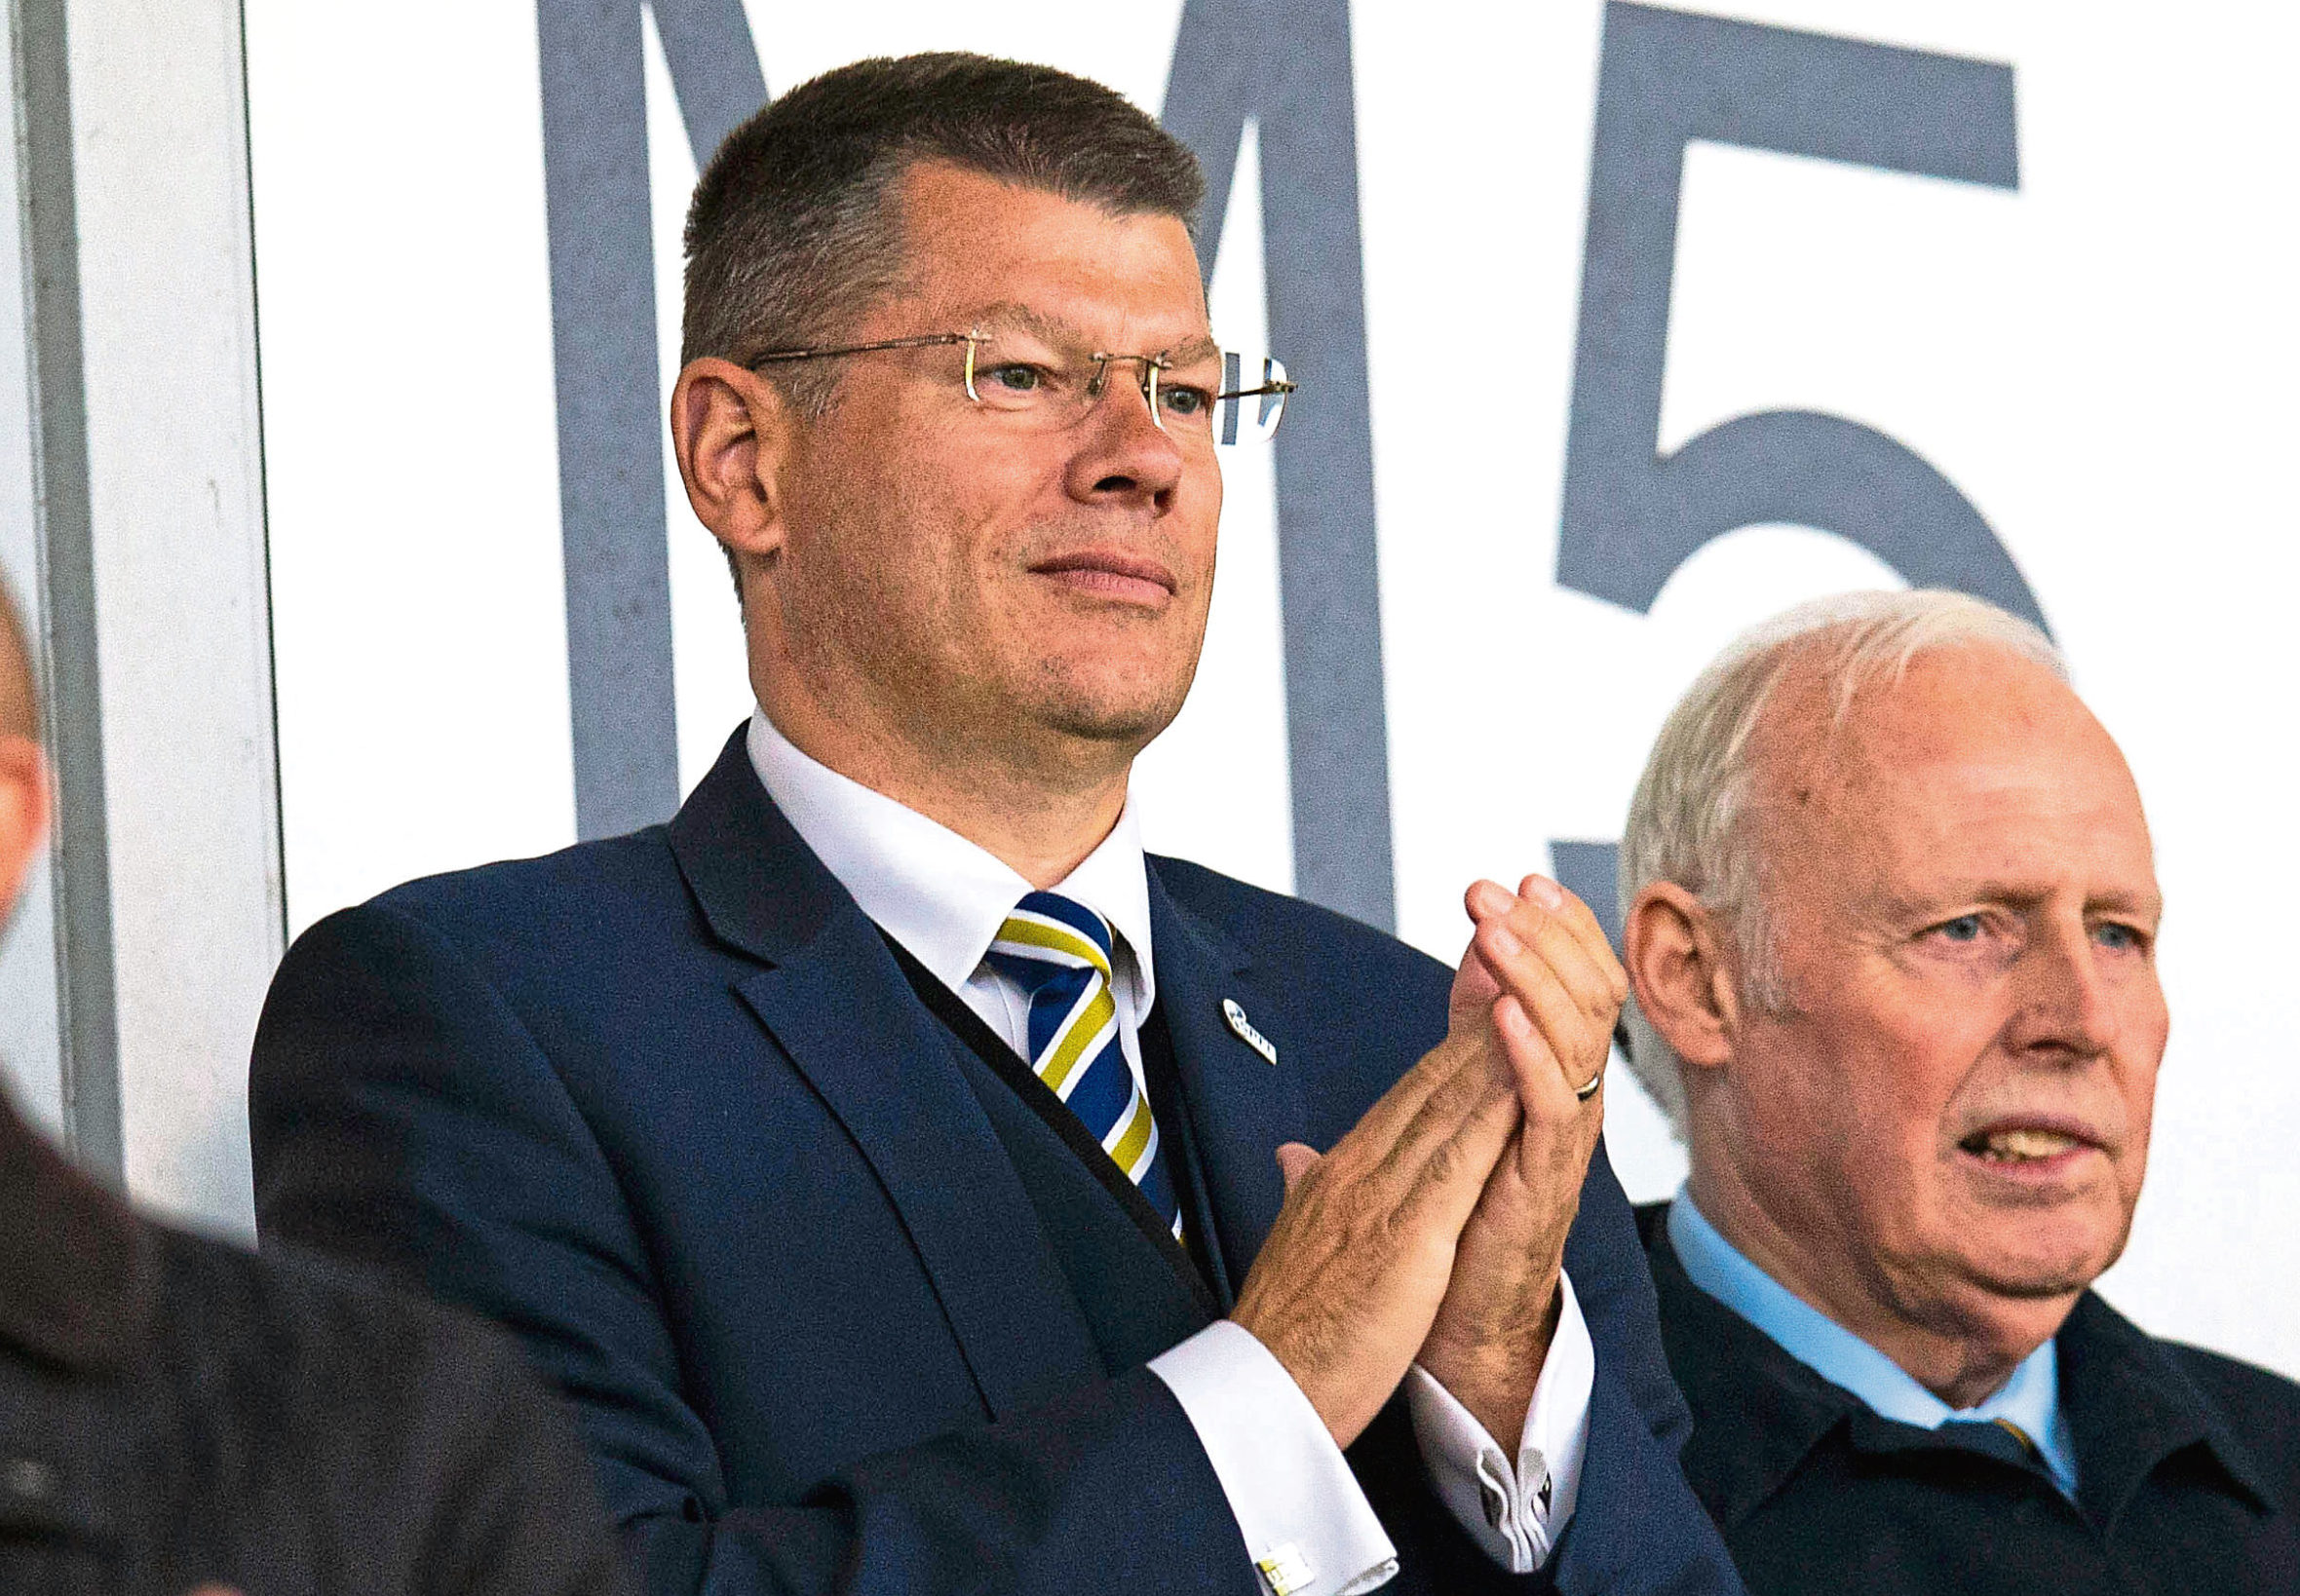 The SPFL's Neil Doncaster